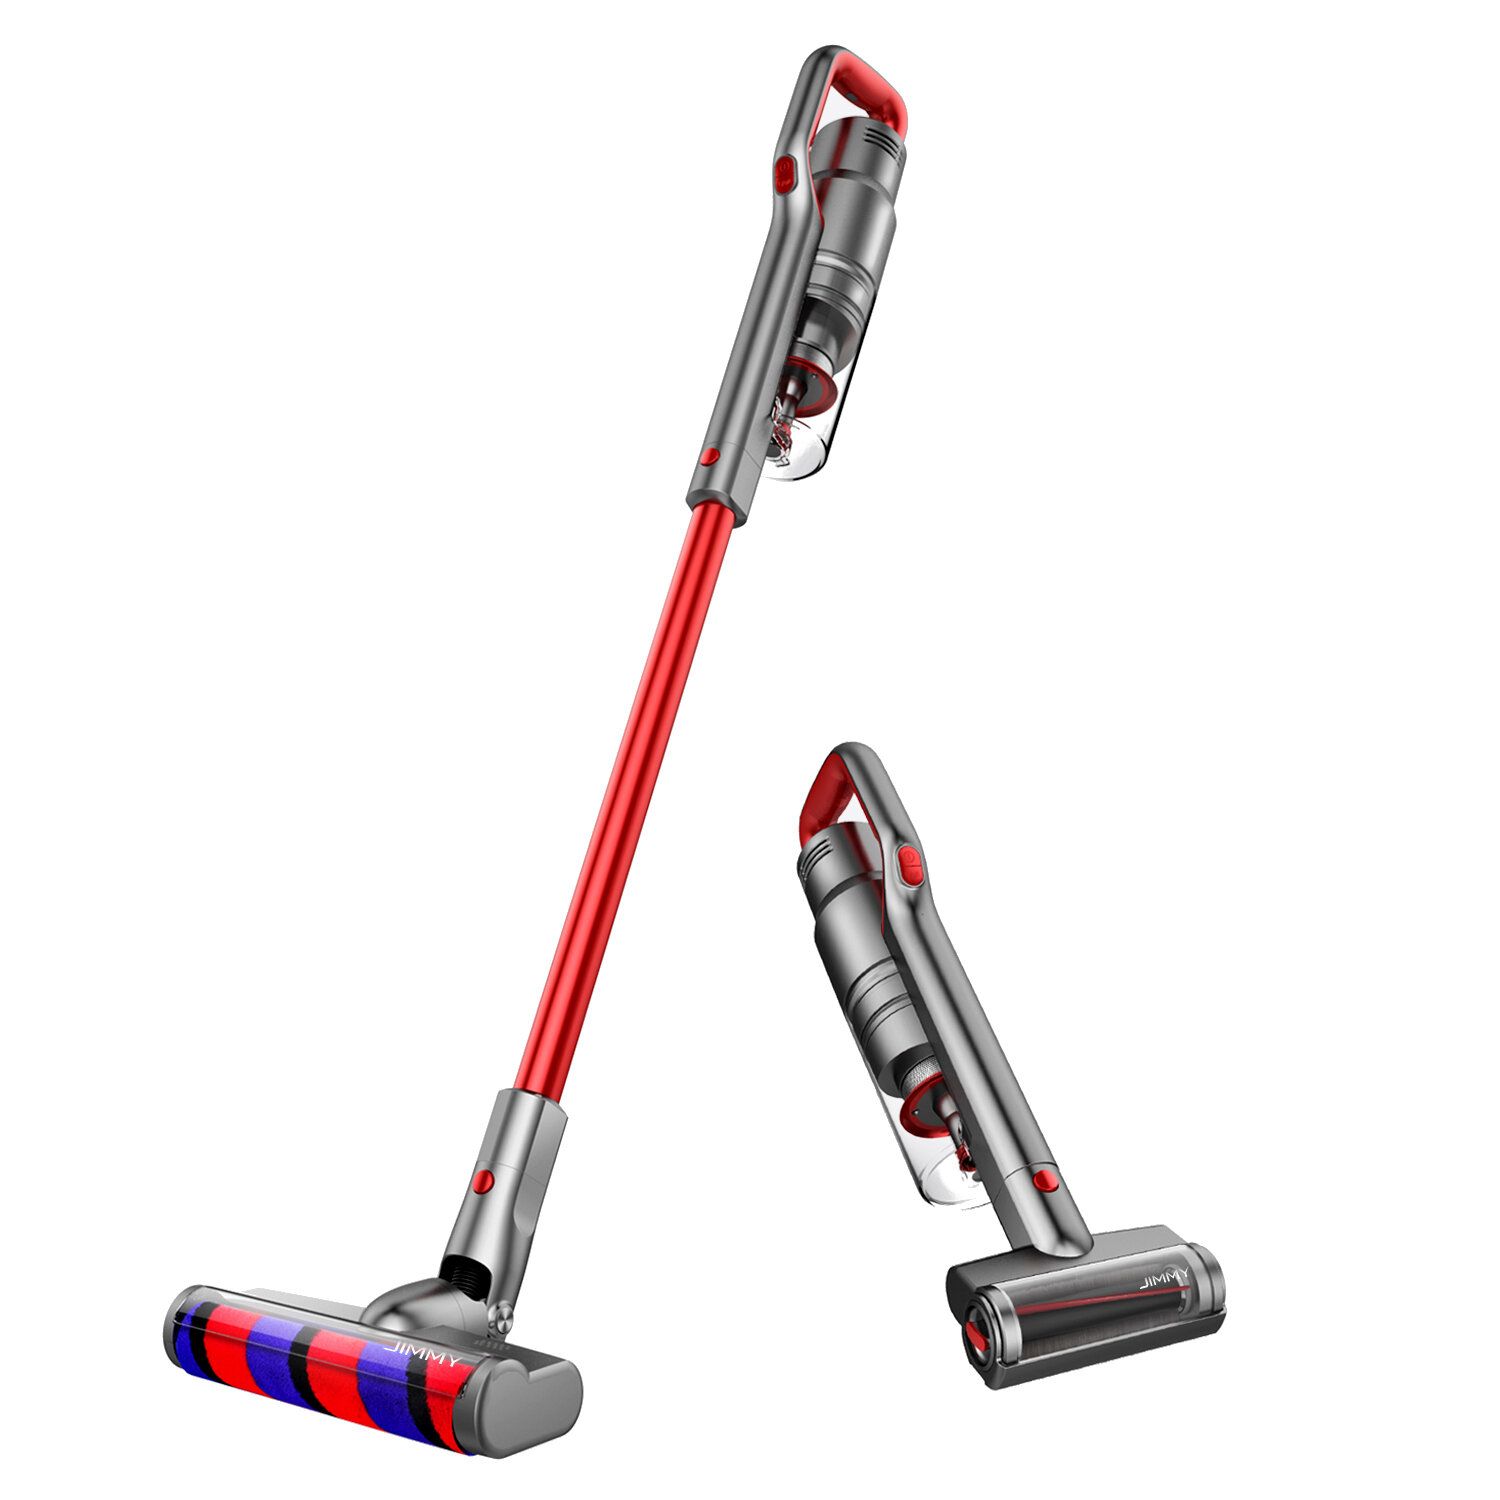 JIMMY JV65 Handheld Cordless Stick Vacuum Cleaner 22000Pa Suction Power Vacuuming and Mopping Dust Collector Digital Motor 145AW Lightweight for Home Hard Floor Carpet Car Pet